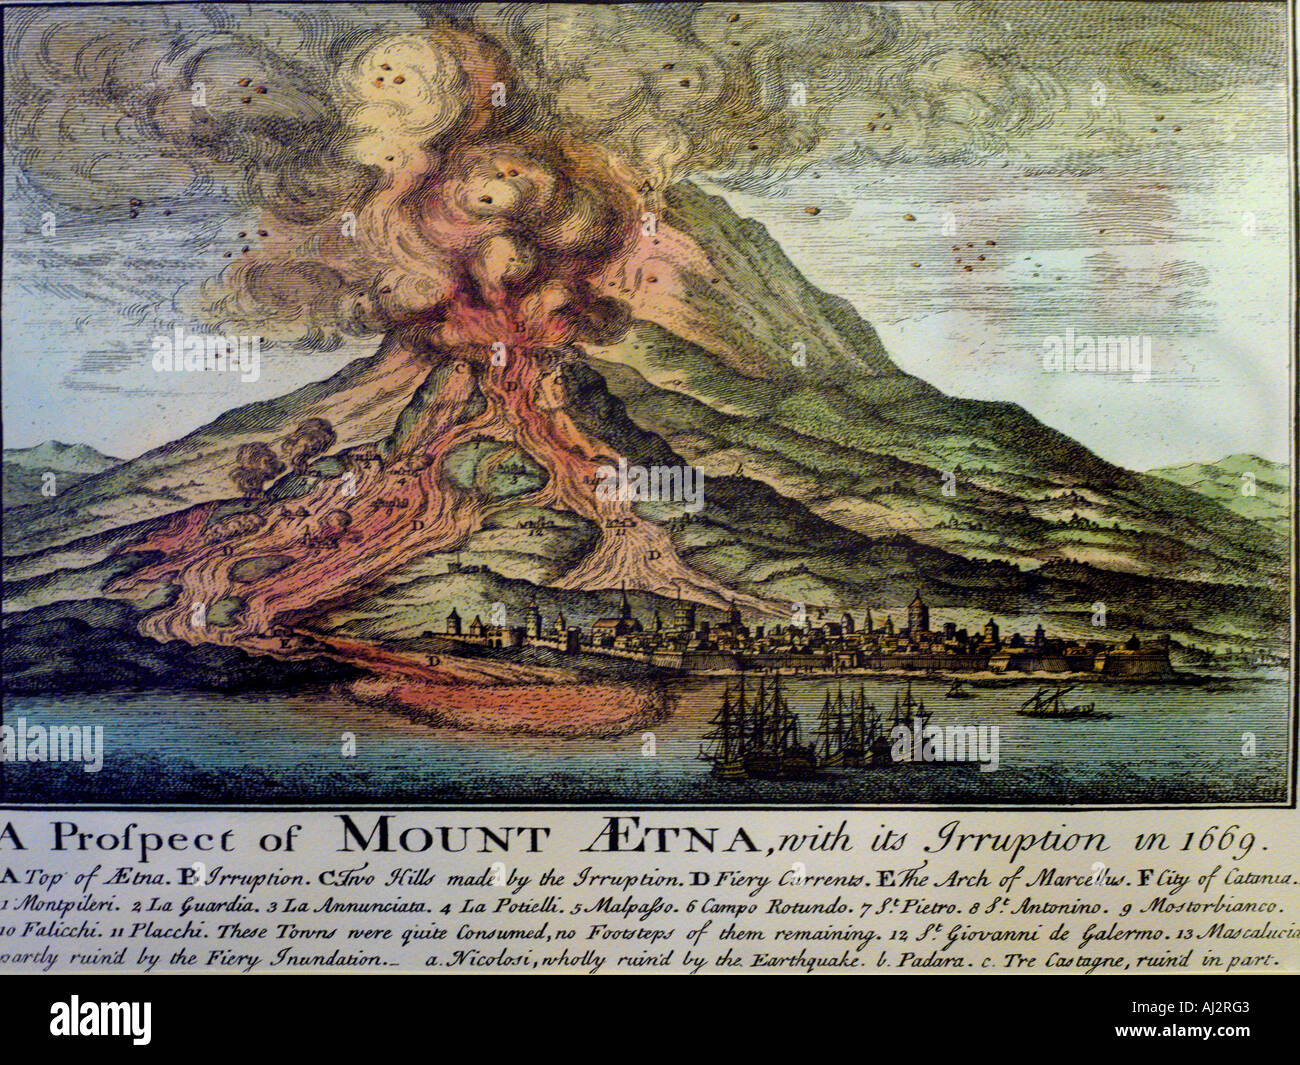 Sicily Italy Wood Cut of Mt Etna Erupting in 1669